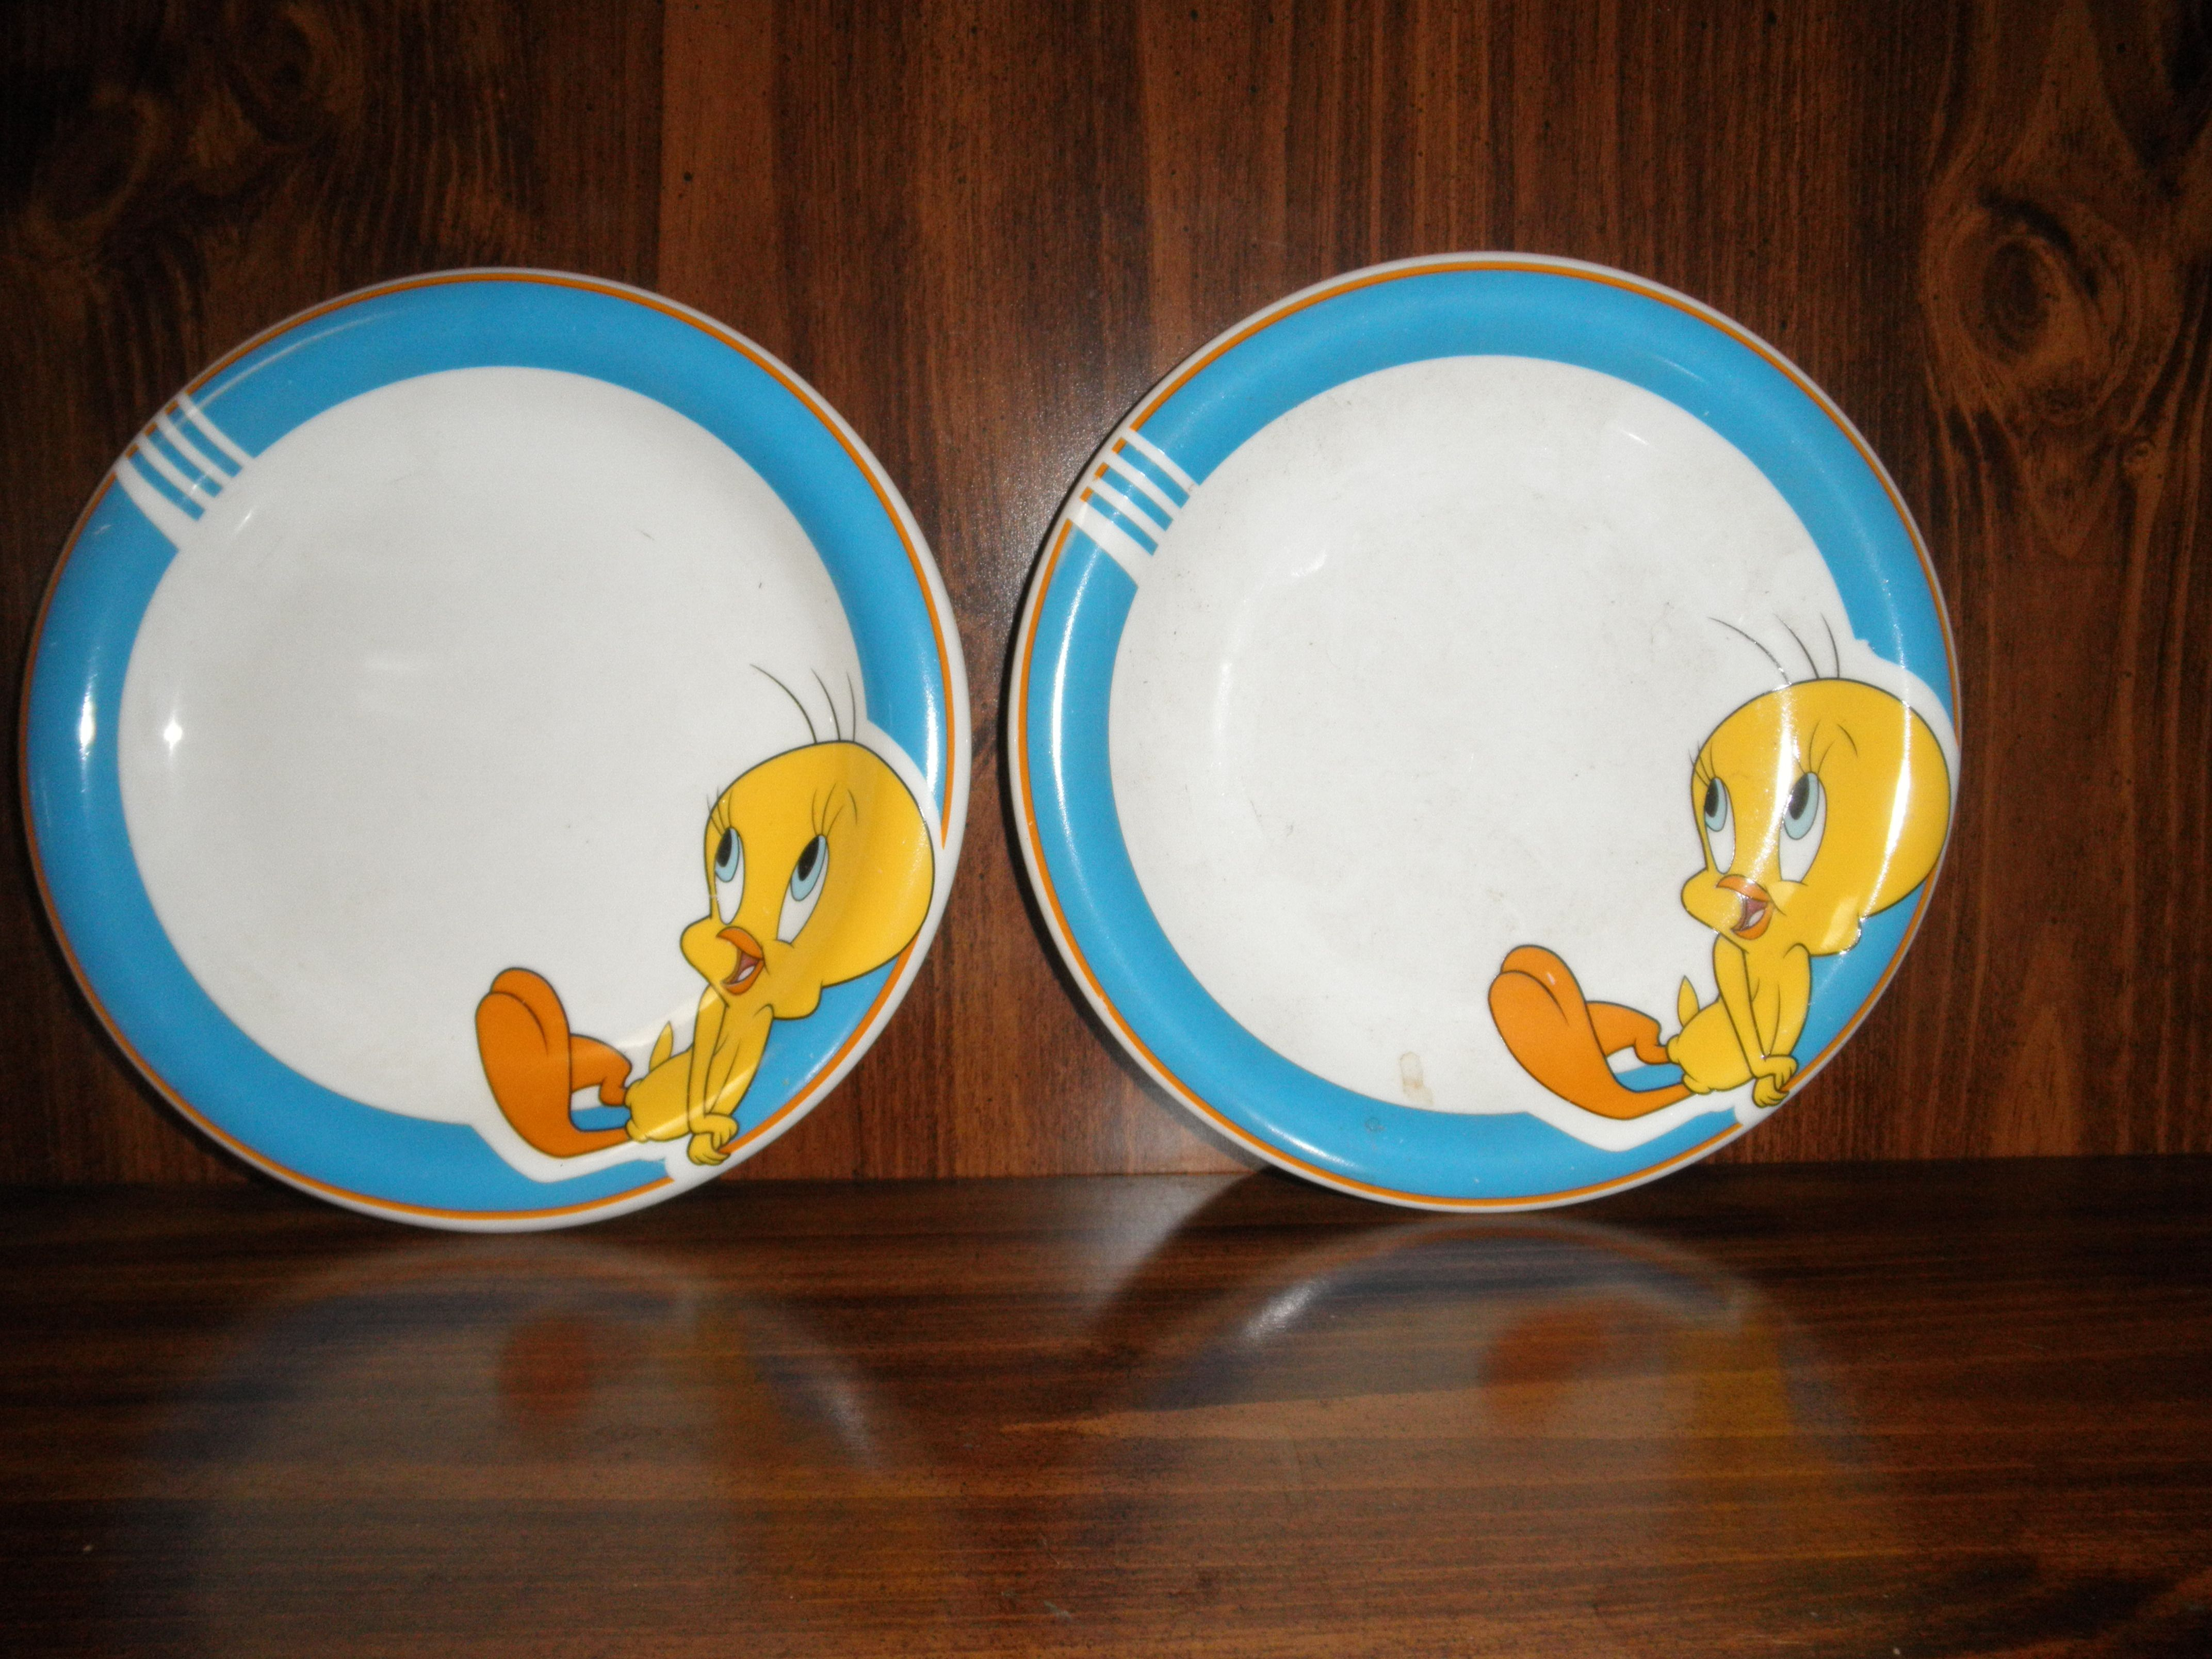 Two antique plates from my niece, Deenise Brownfield in 1980